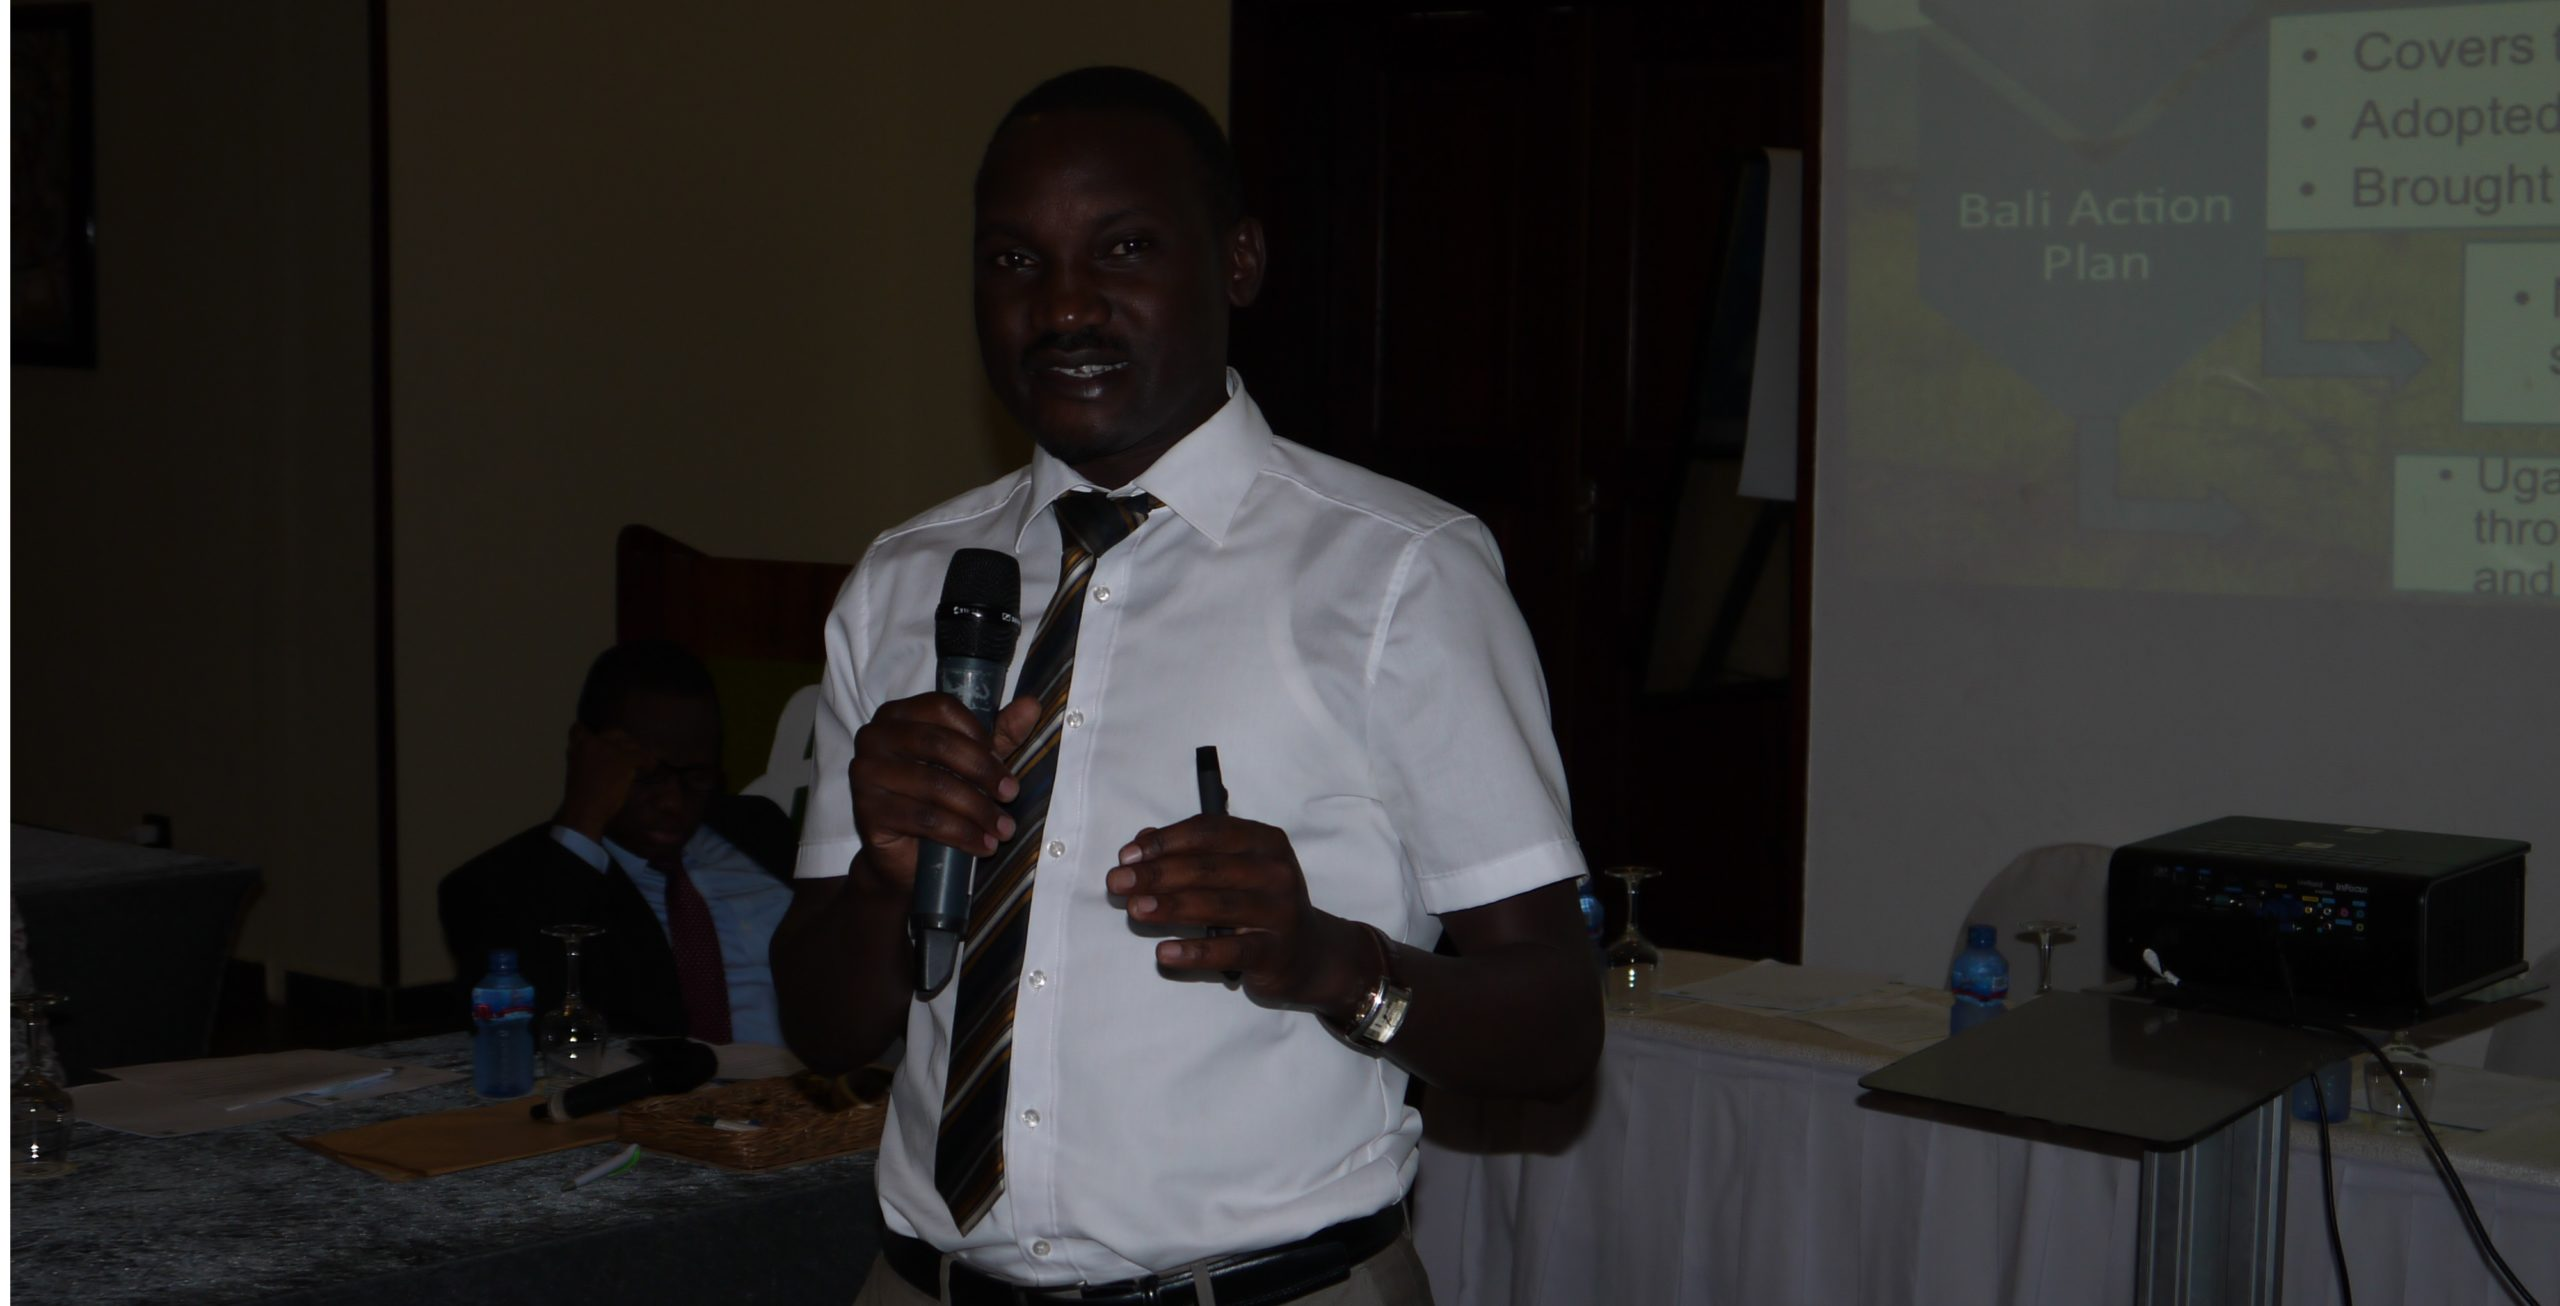 Mr. Bob Natifu, UN CC:Learn Ambassador for Climate Change Learning shared the experience of Uganda with developing a National Climate Change Learning Strategy.